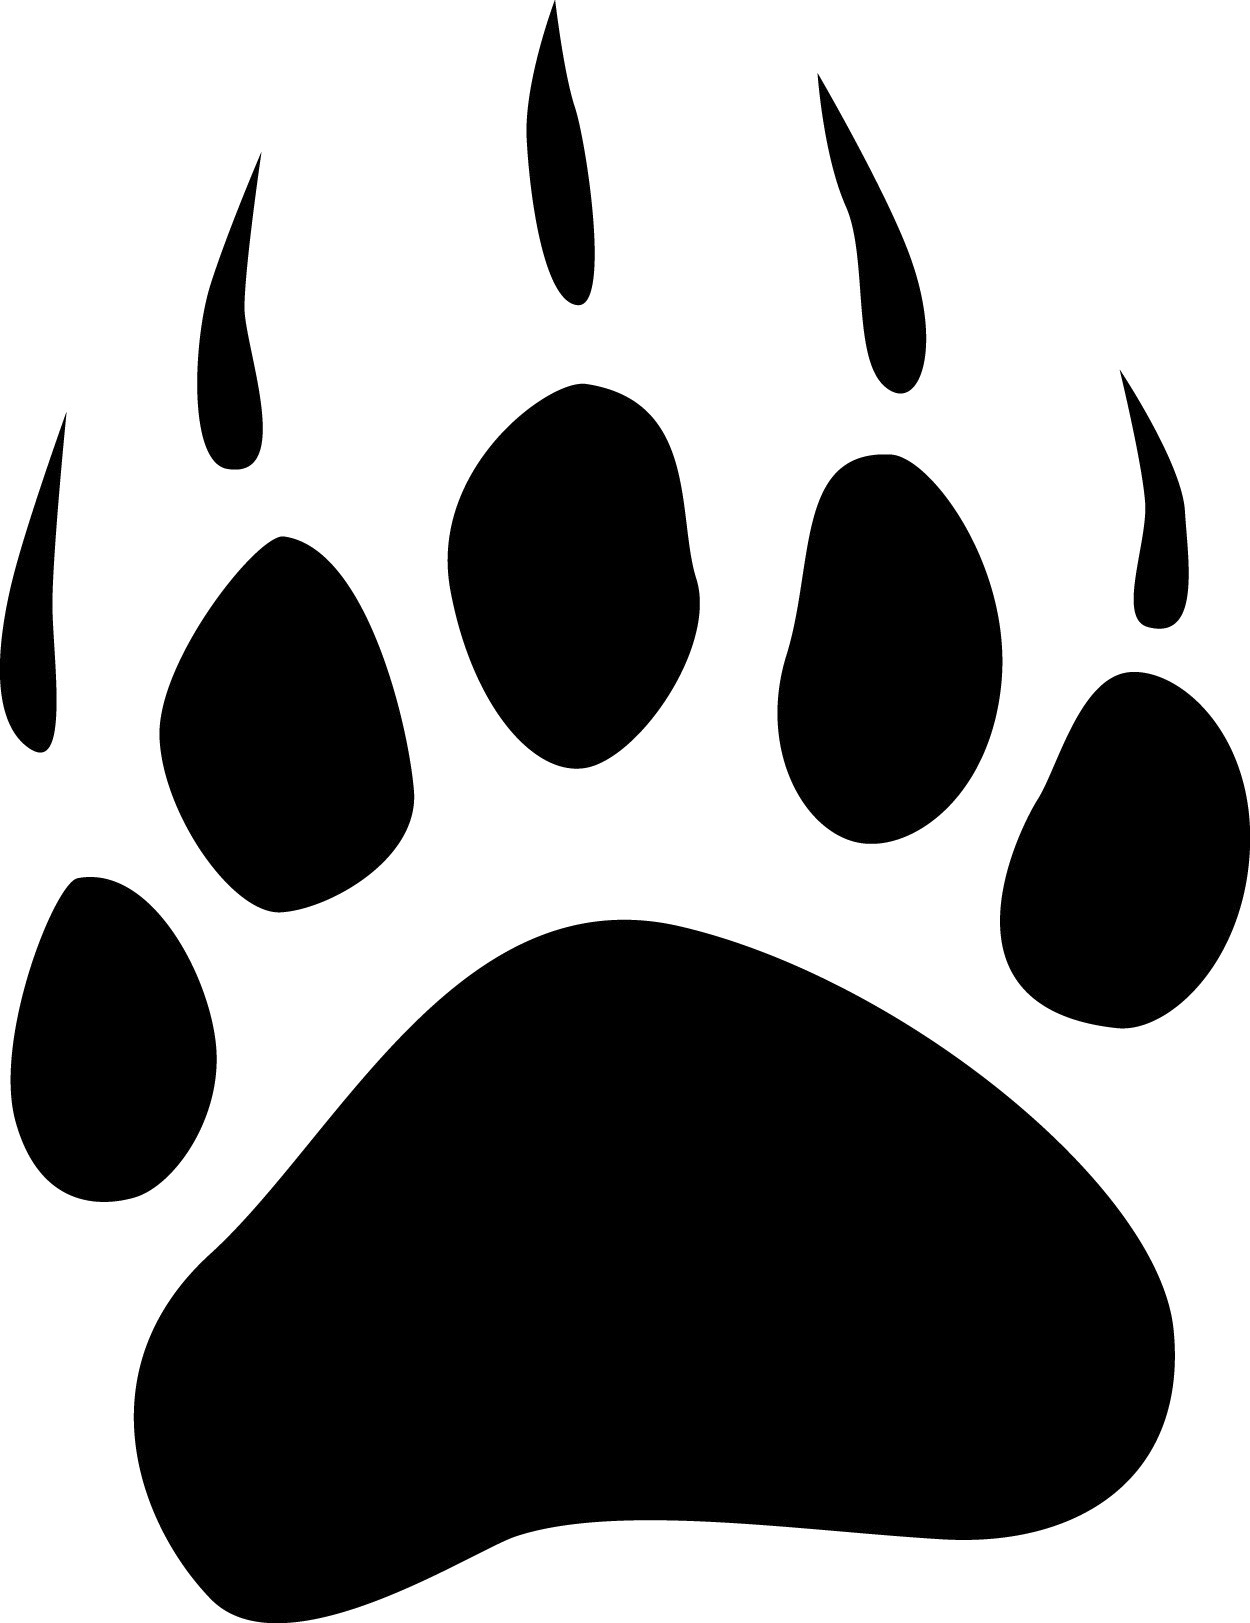 1250x1623 Paw Clipart Silhouette